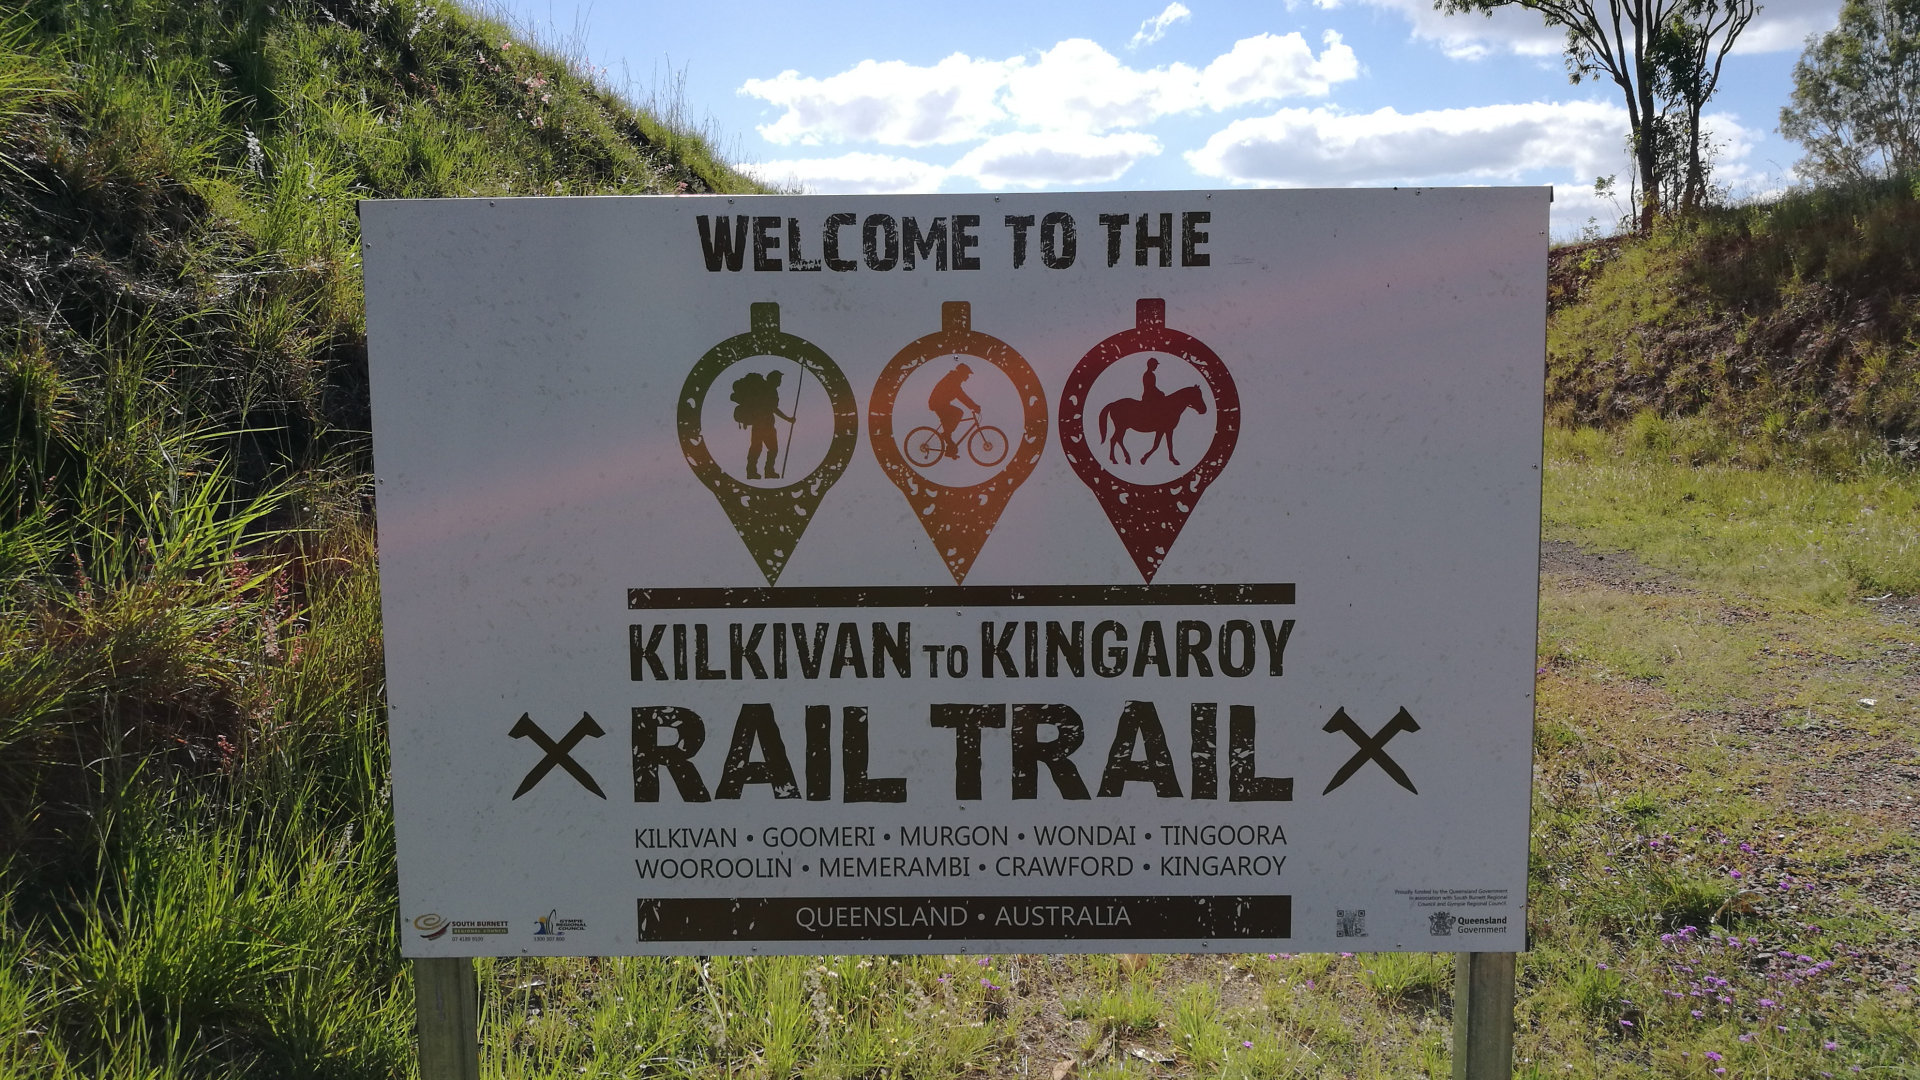 Sign at the start of the Kilkivan to Kingaroy Rail Trail. It reads Welcome to the Kilkivan to Kingaroy with the towns listed underneath. Symbols for hiking, bike riding, and horseriding